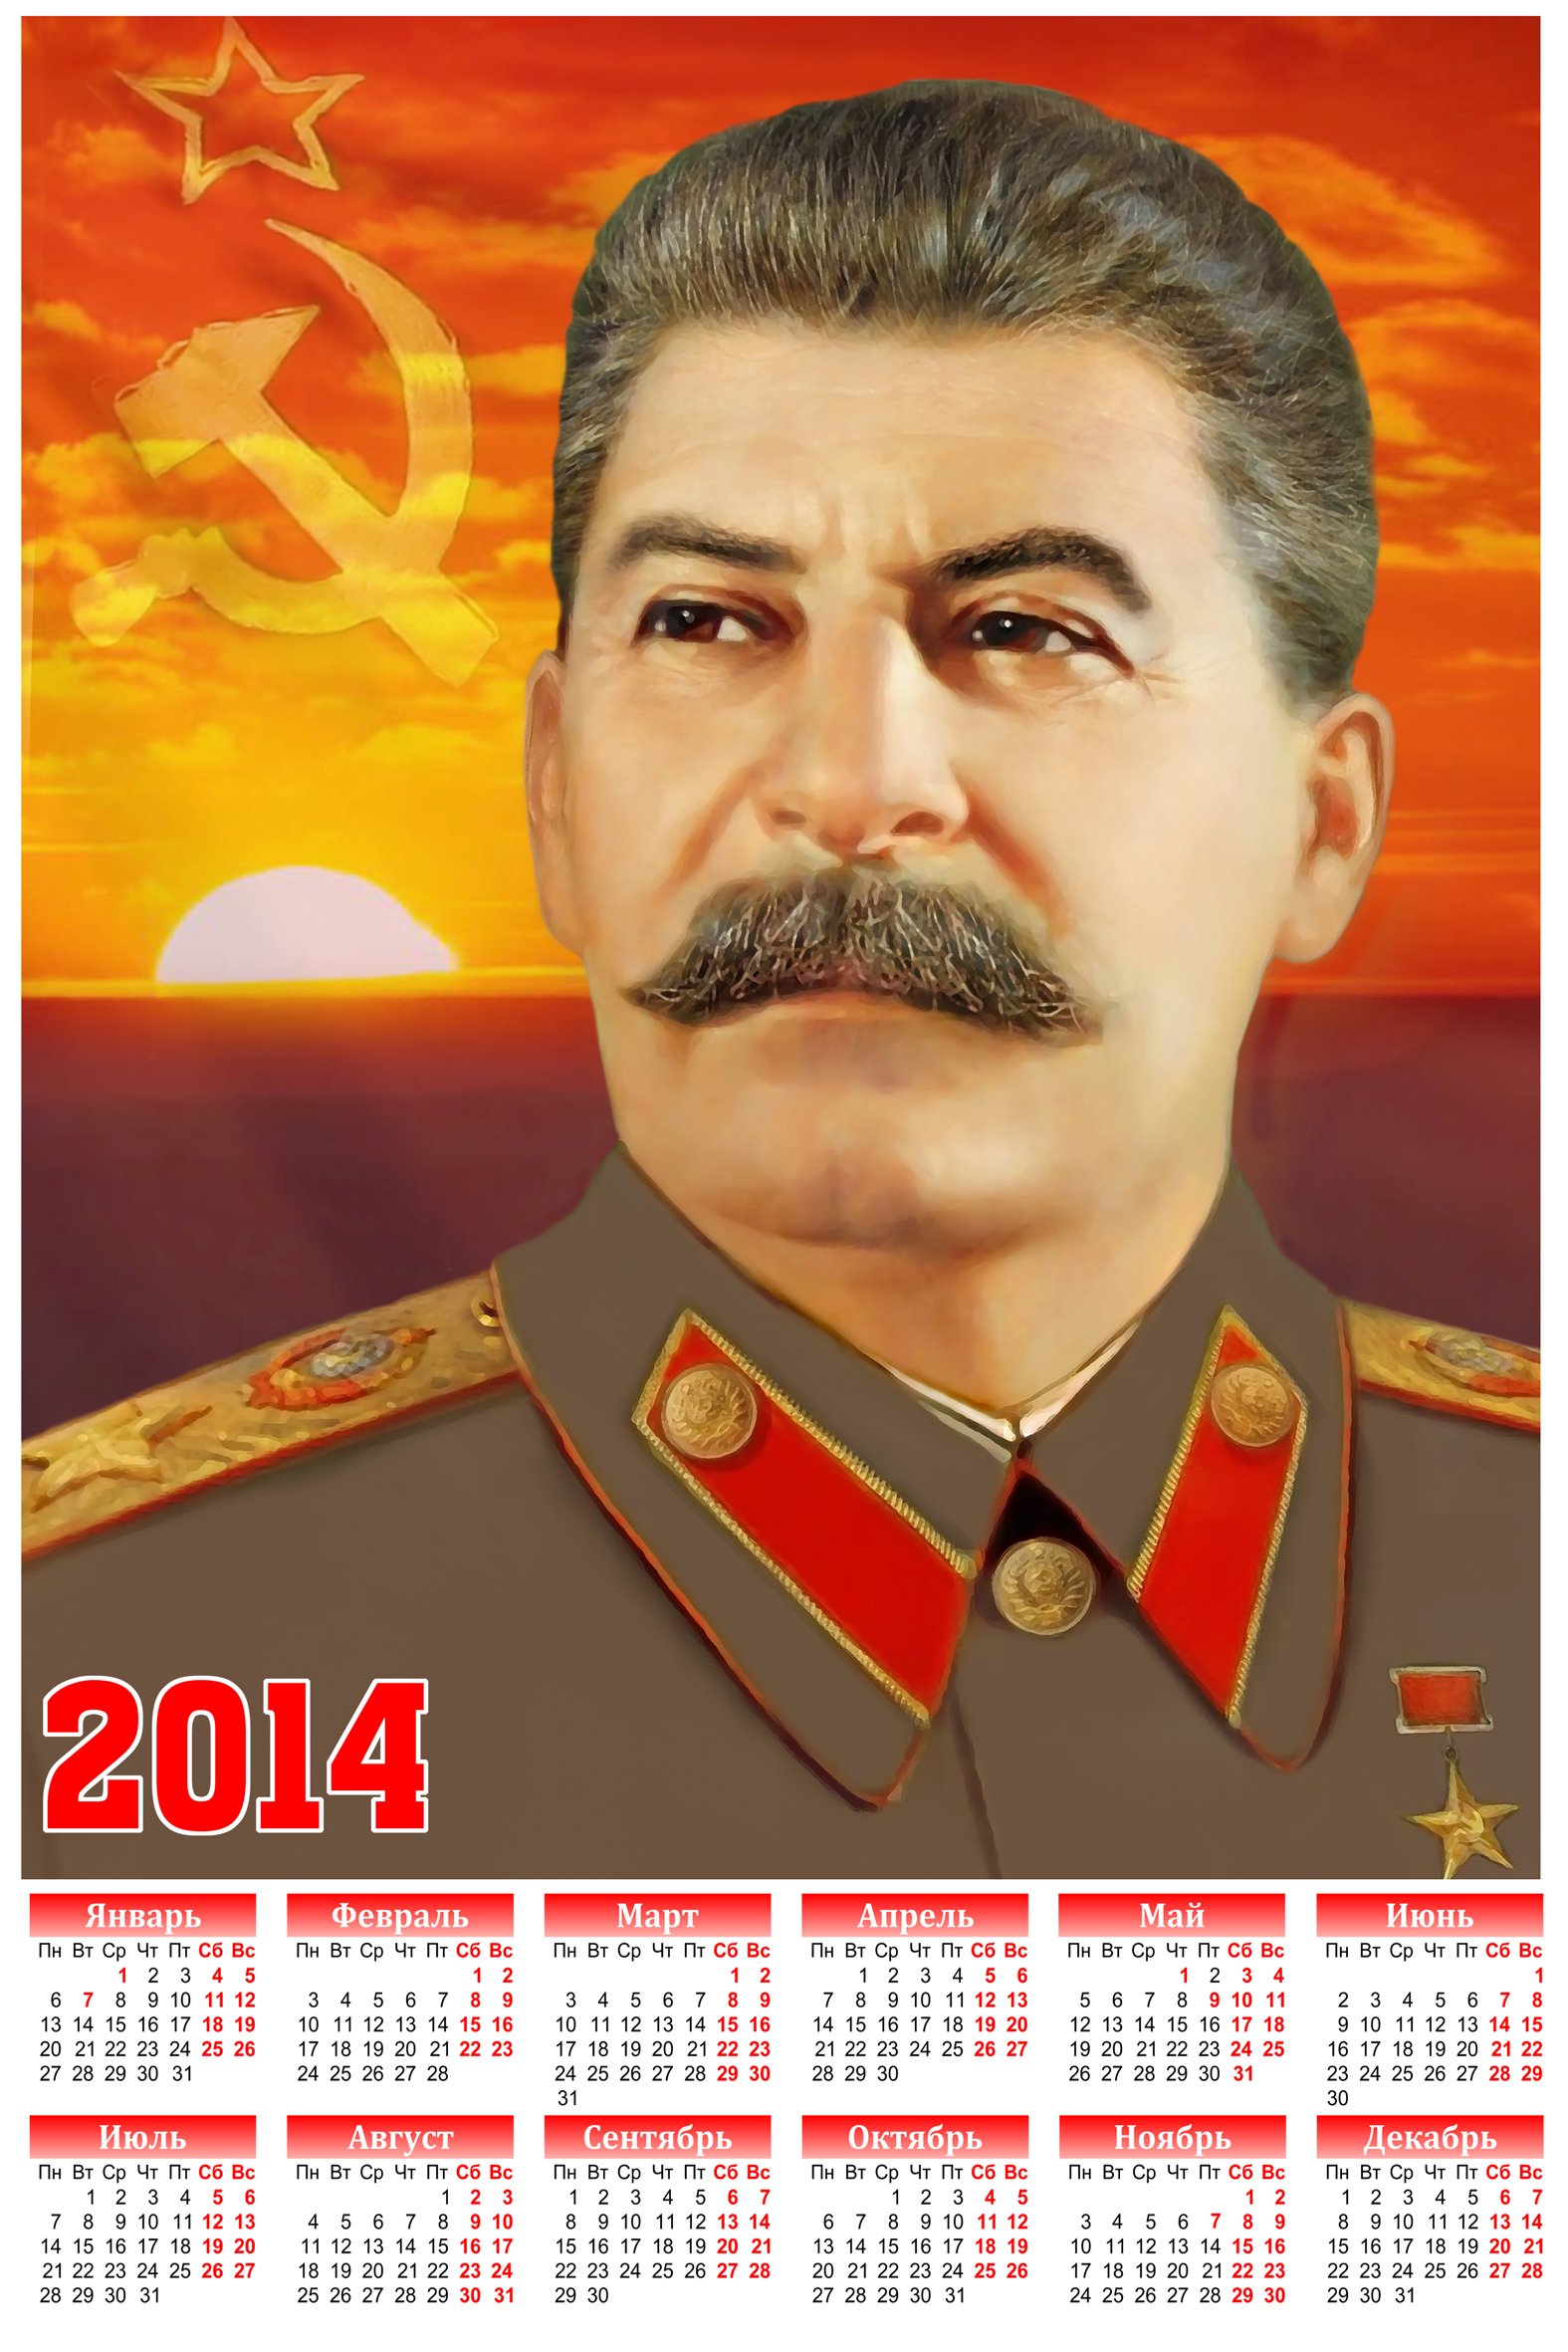 http://swalker.org/uploads/posts/2013-11/1383830345_swalker.org_kalendar_stalin_2014_2.jpg height=891